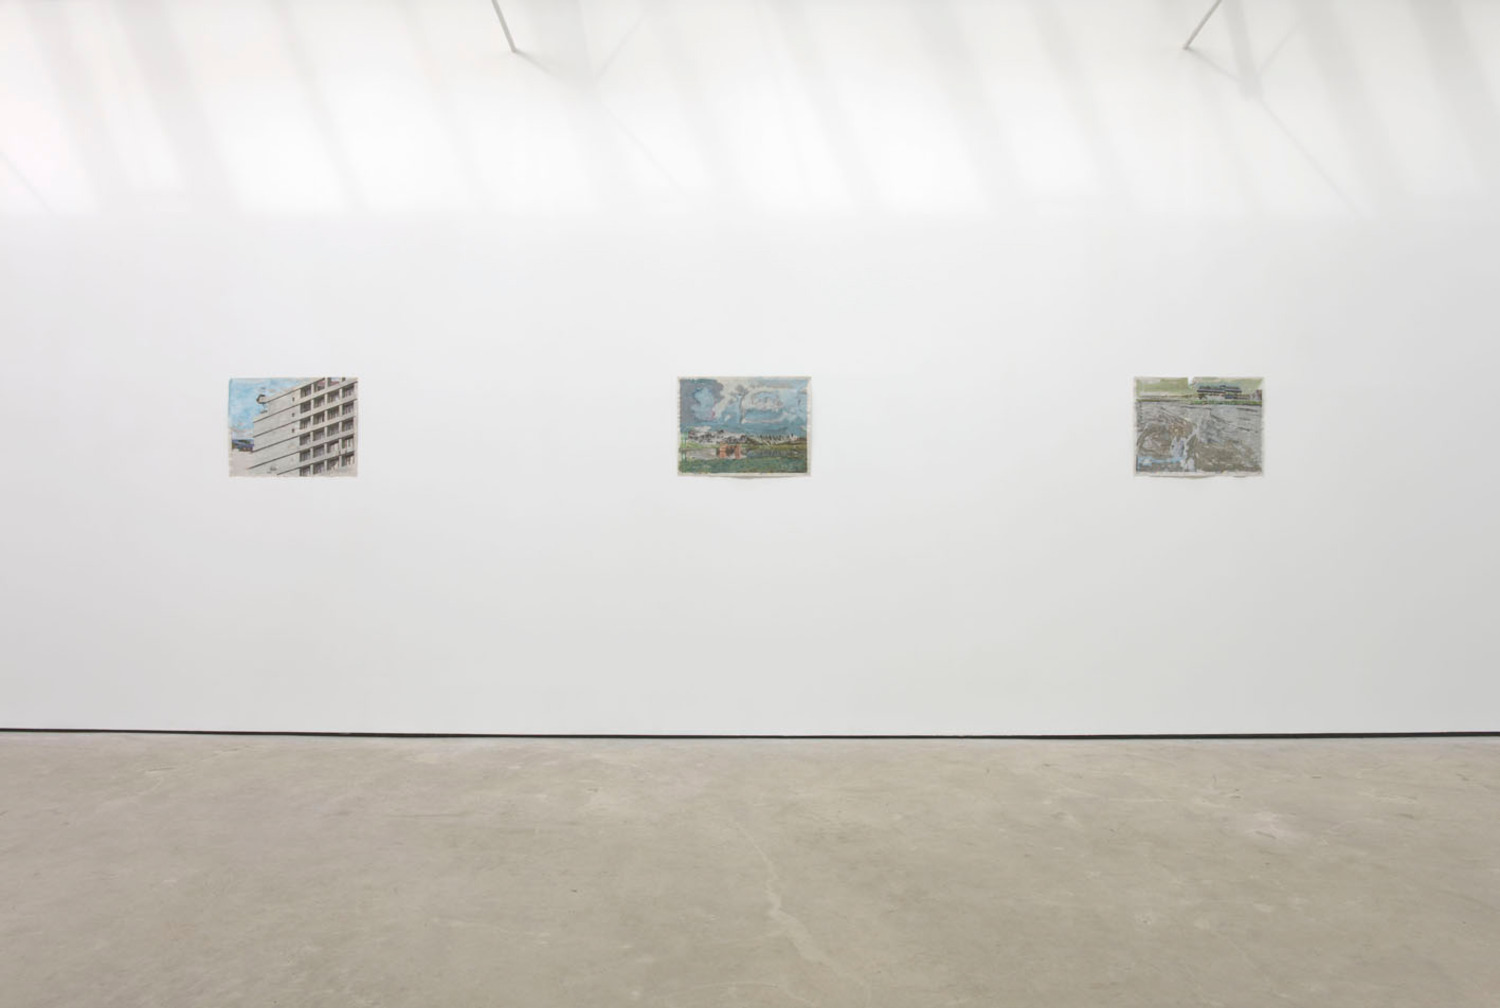 Installation view, 'Afterwards in Pictures', The Modern Institute, Osborne Street, Glasgow, 2011